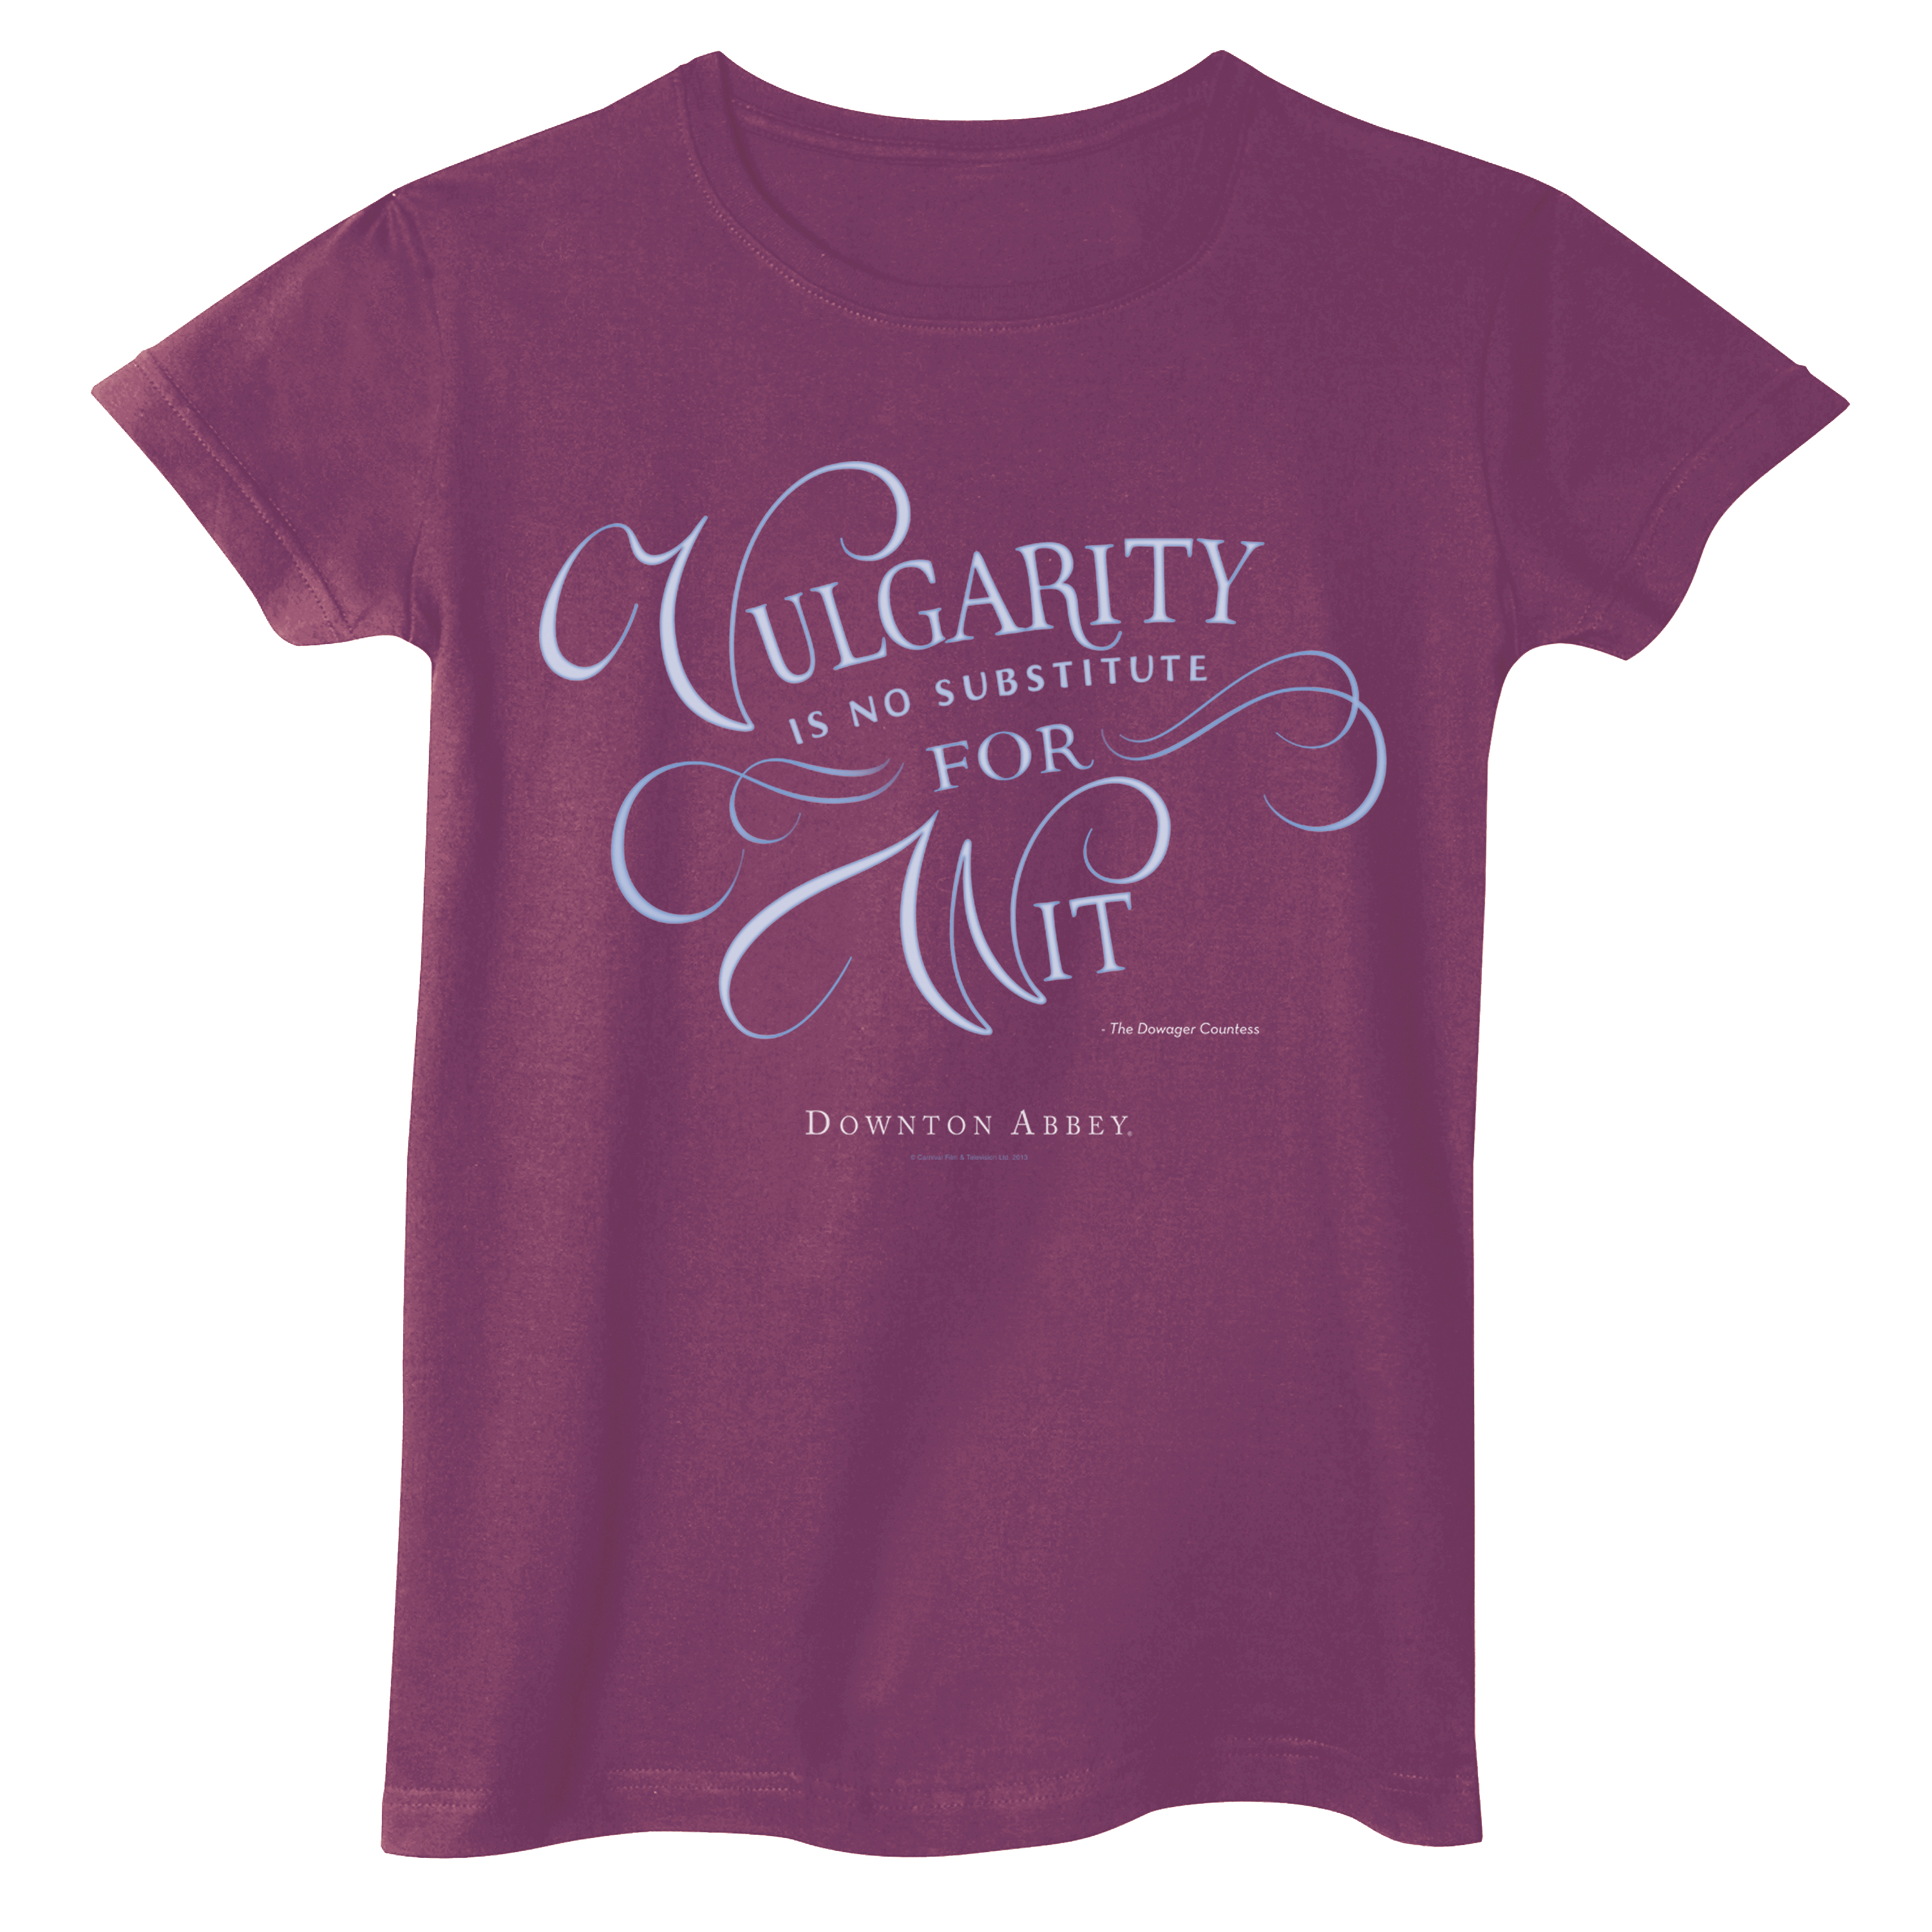 Women's Downton Abbey Vulgarity Is No Substitute T-Shirt - Long Or Short Sleeves